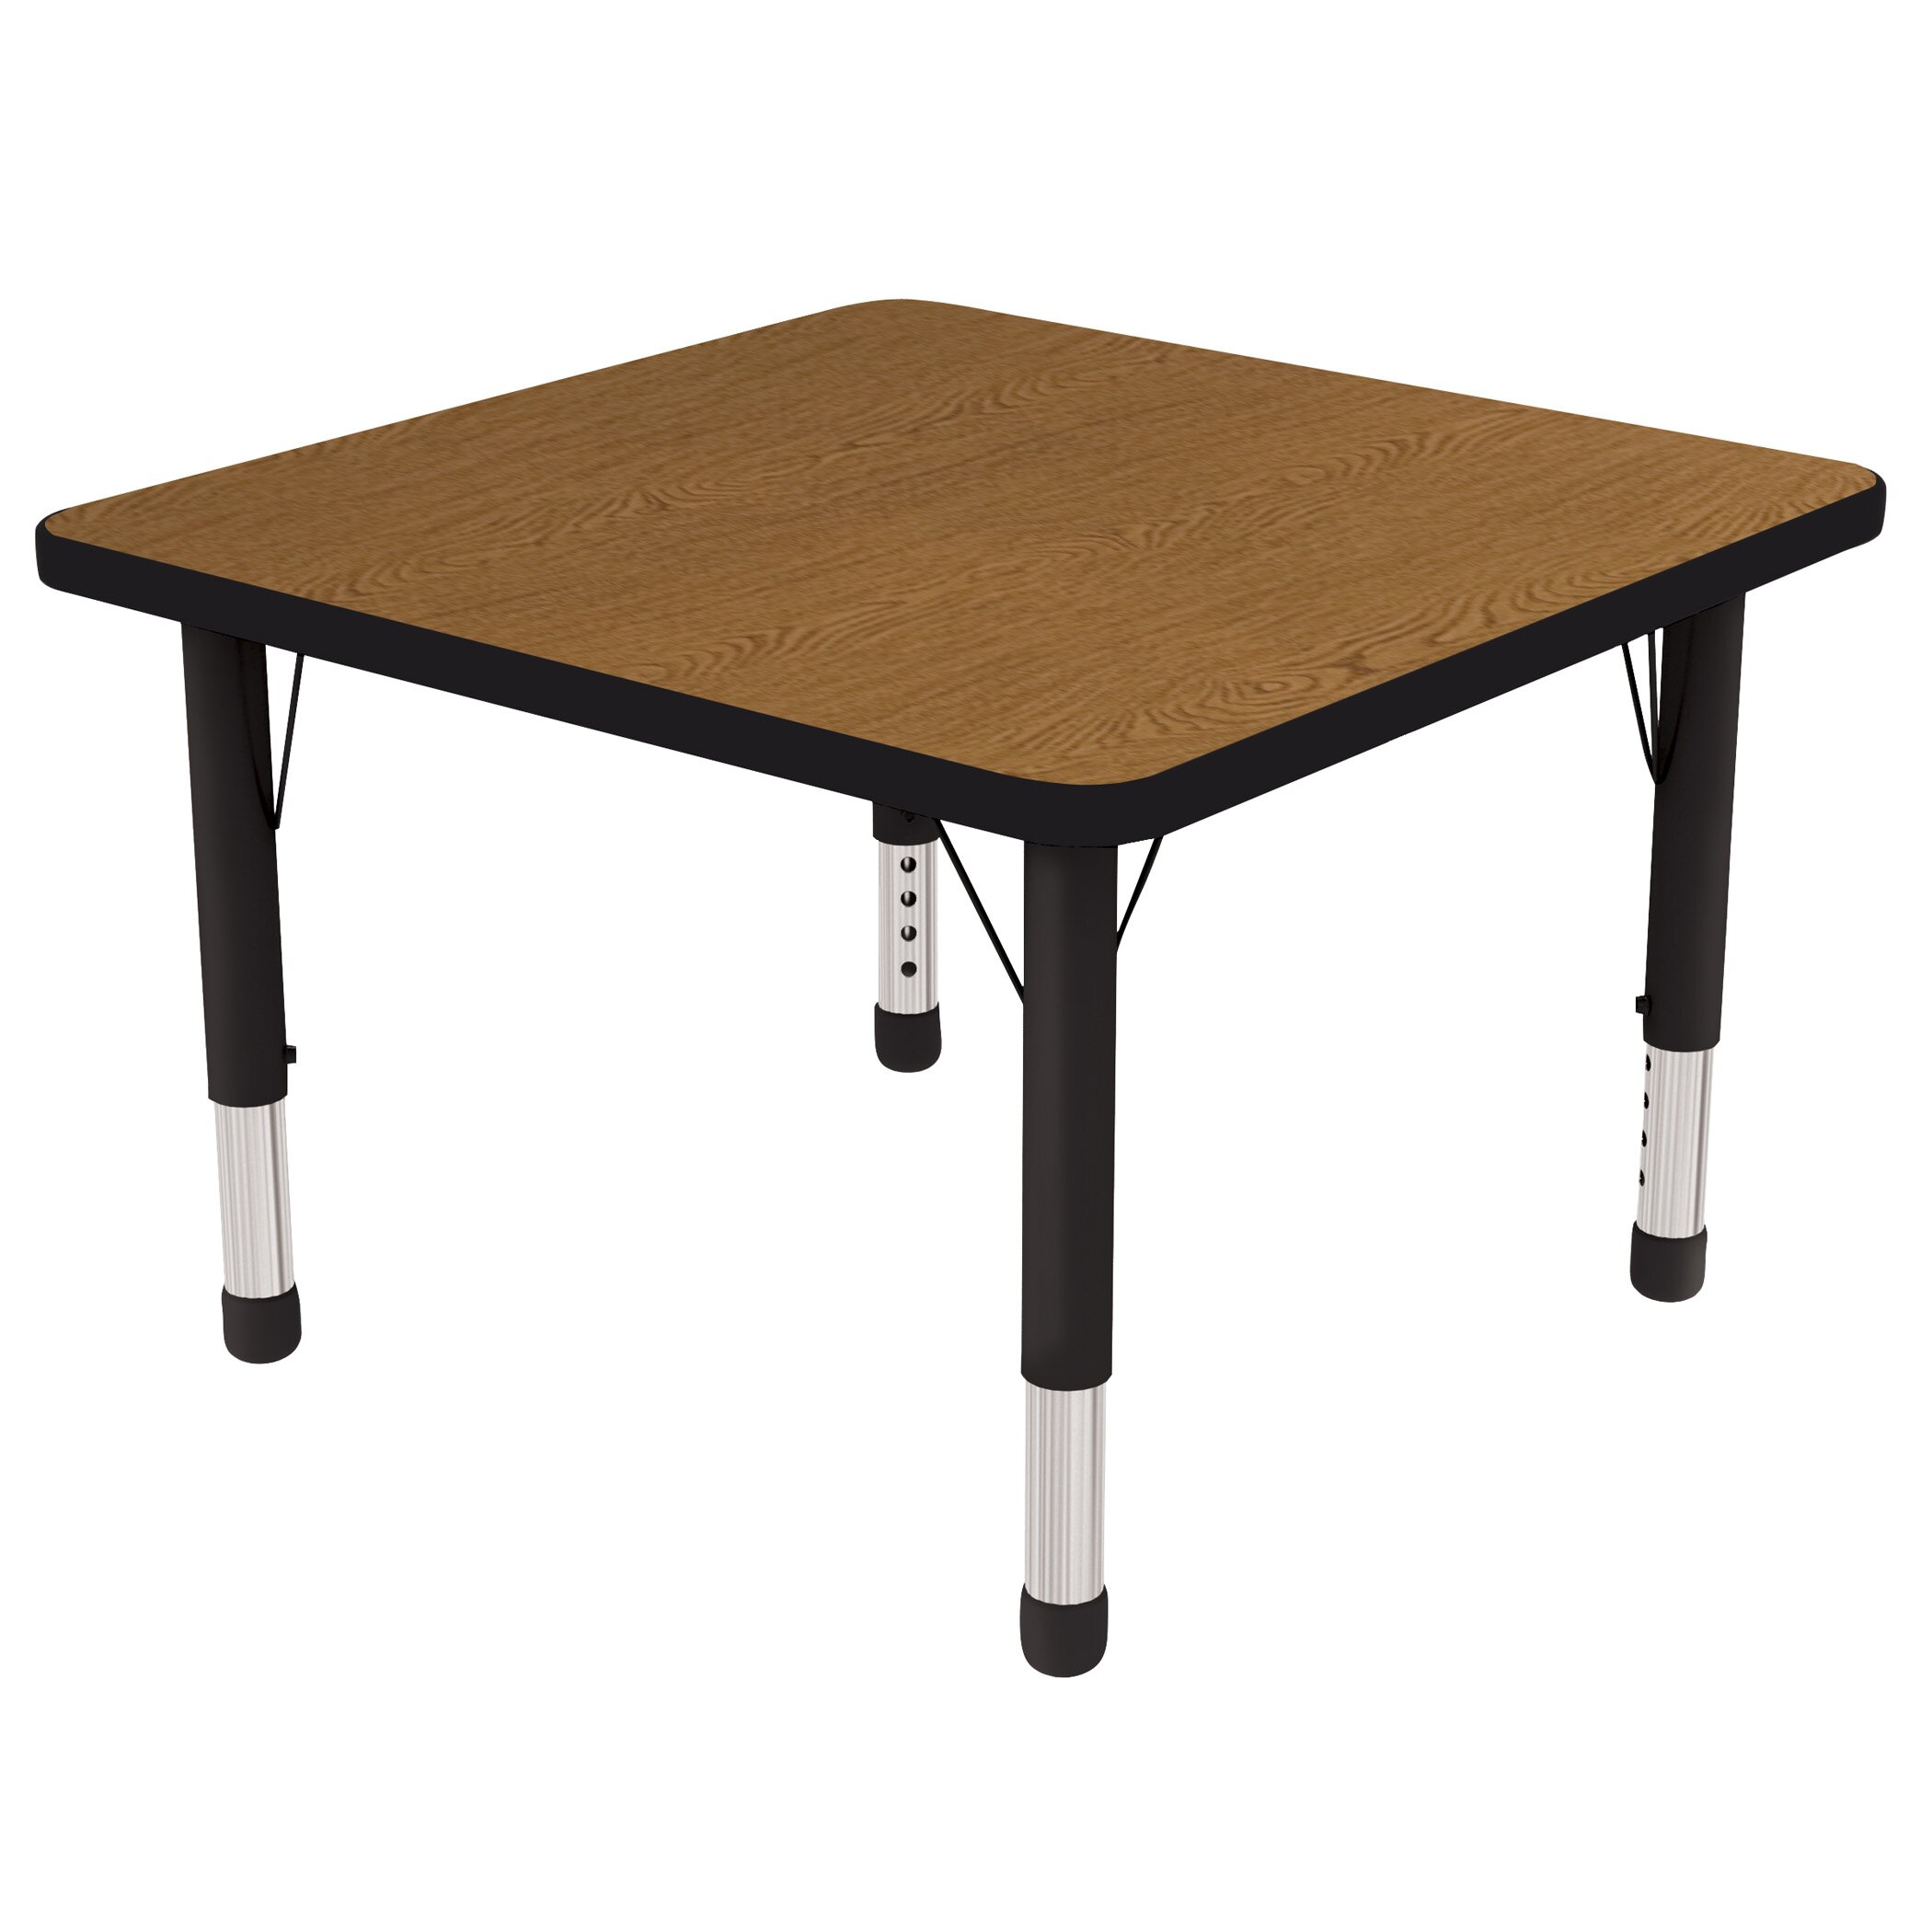 Ecr4kids 30 square activity table reviews wayfair for School furniture 4 less reviews